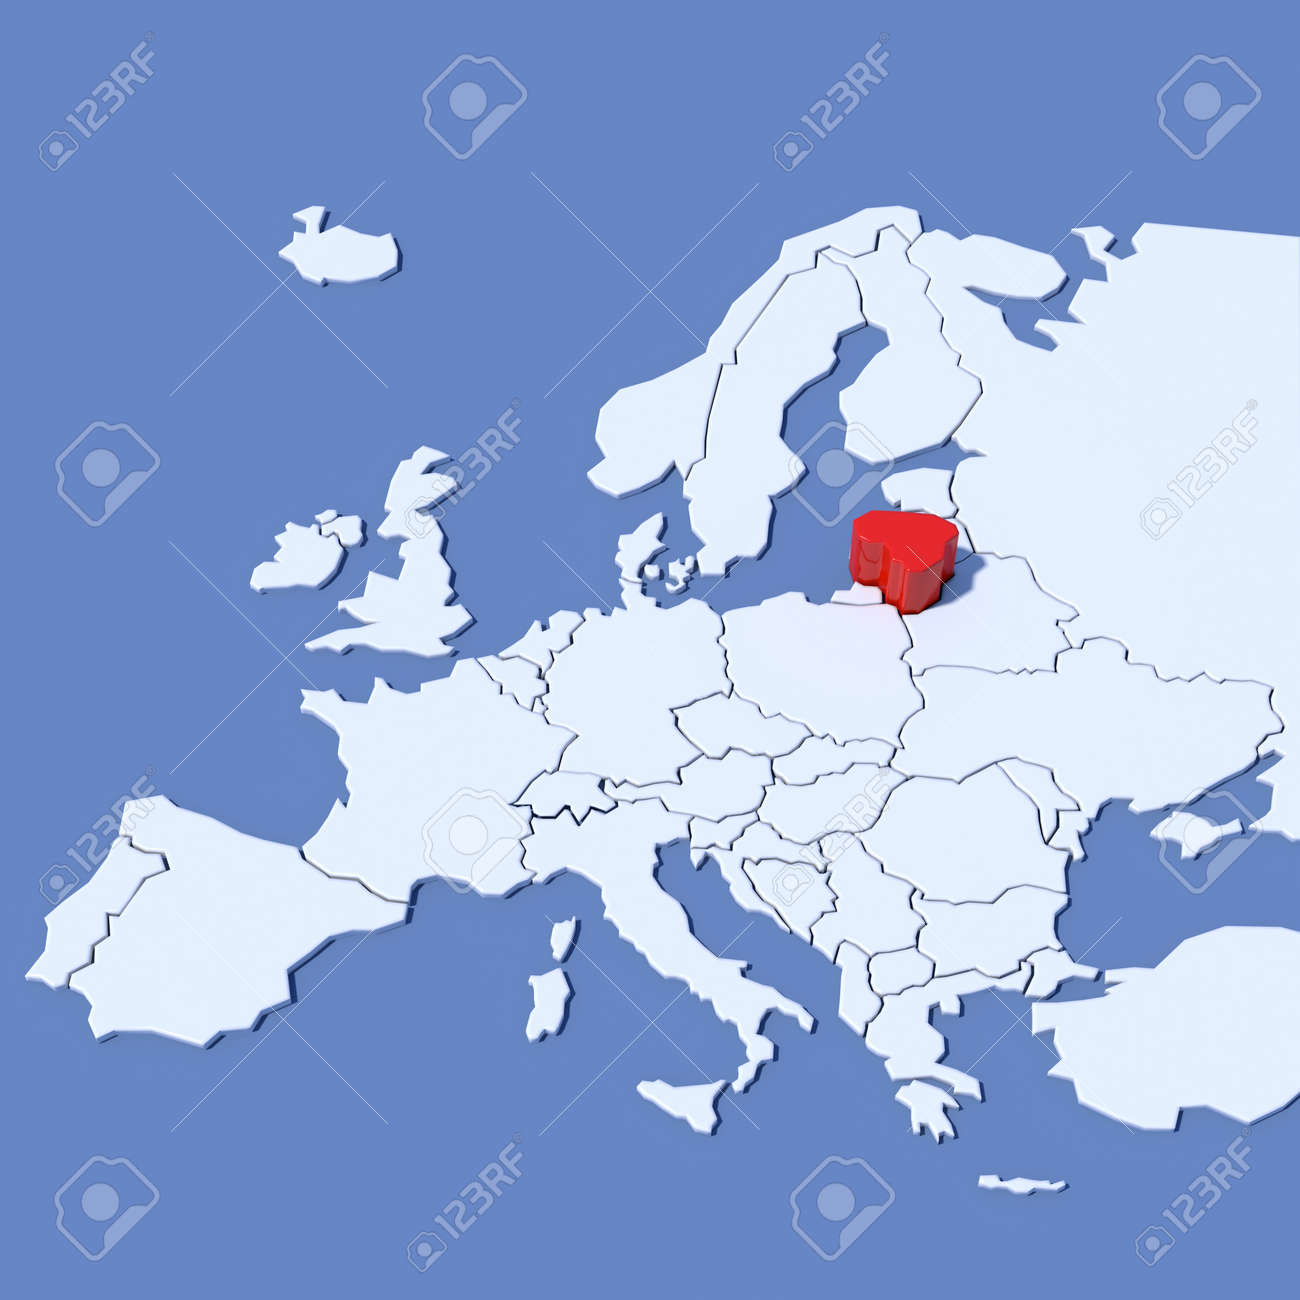 Lithuania On Europe Map.3d Map Of Europe With Indication Lithuania Stock Photo Picture And